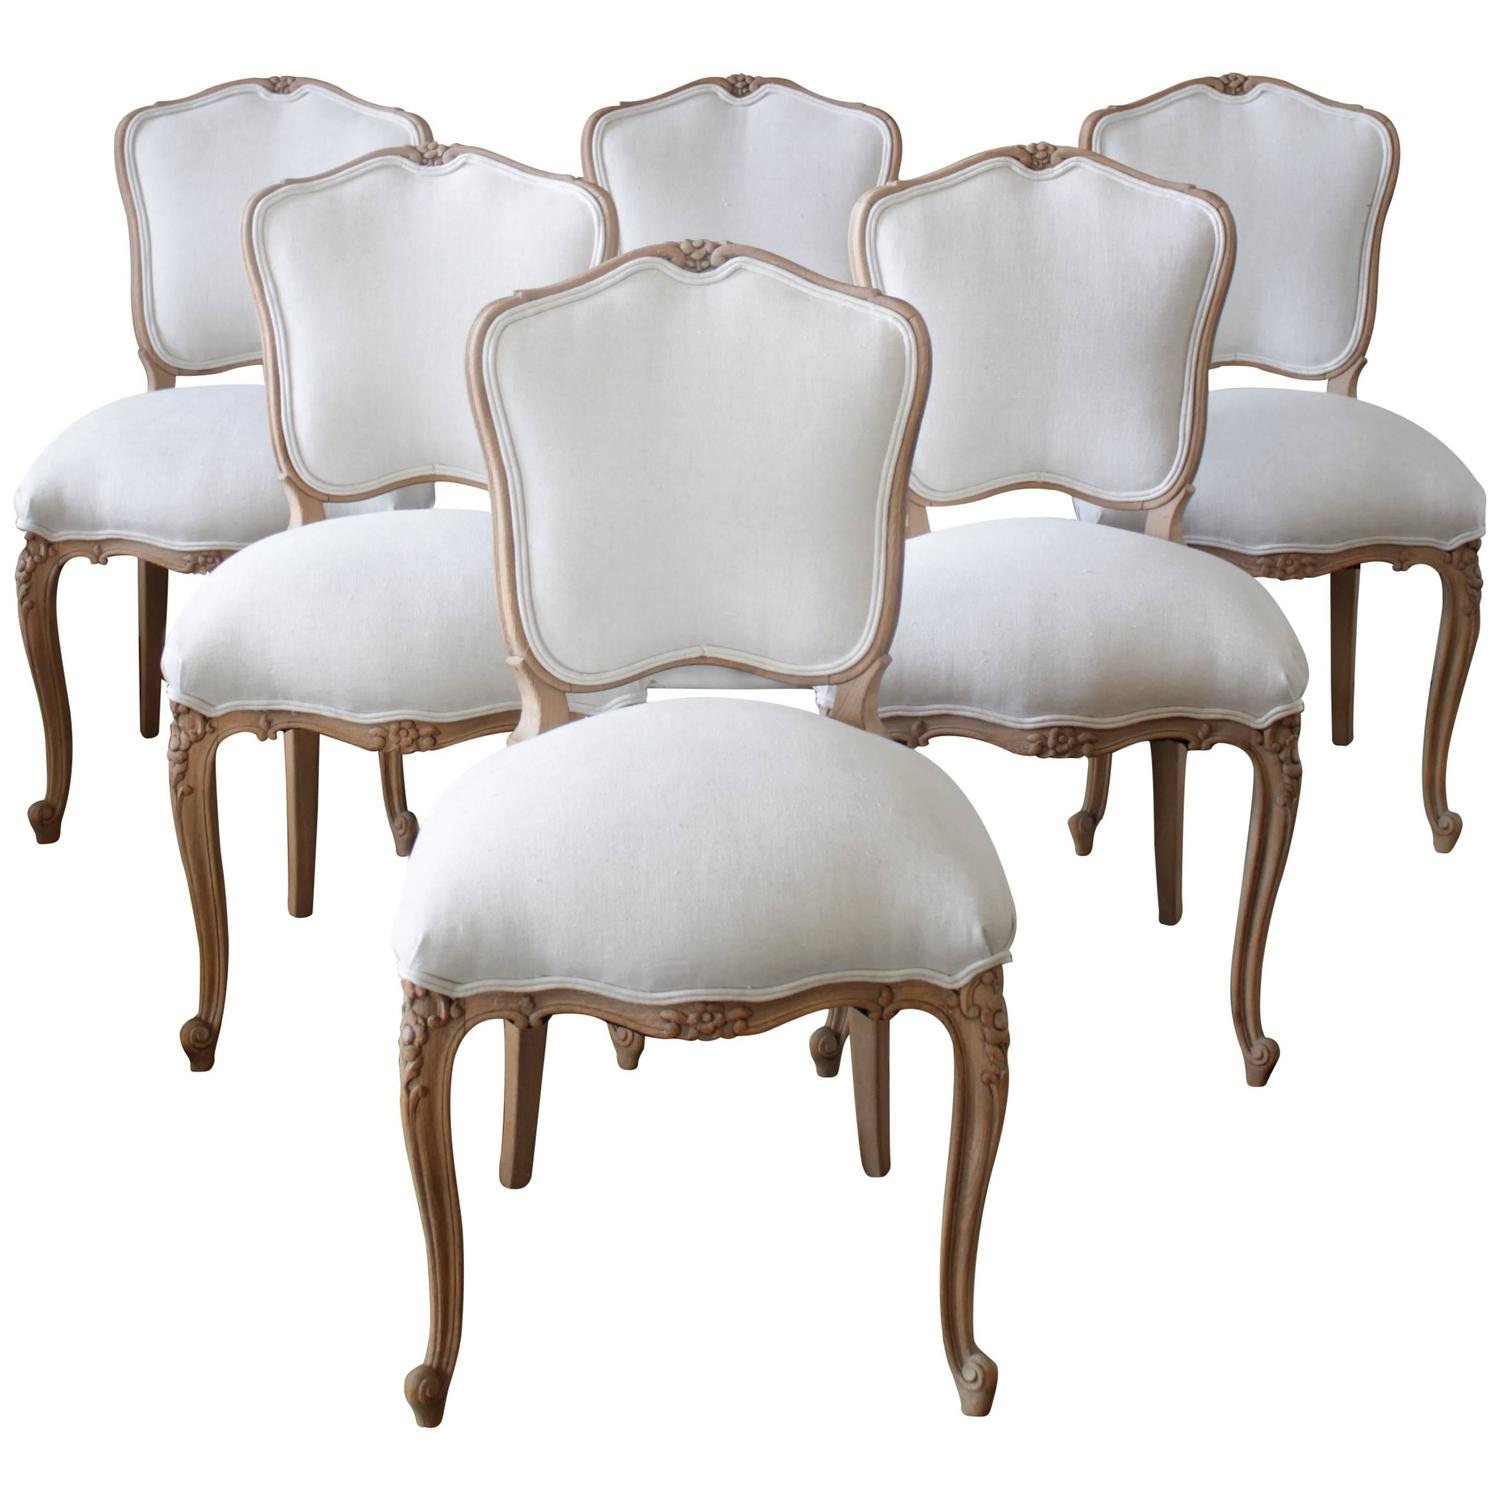 Country Dining Chairs Louis Xv Style French Country Dining Chairs At 1stdibs